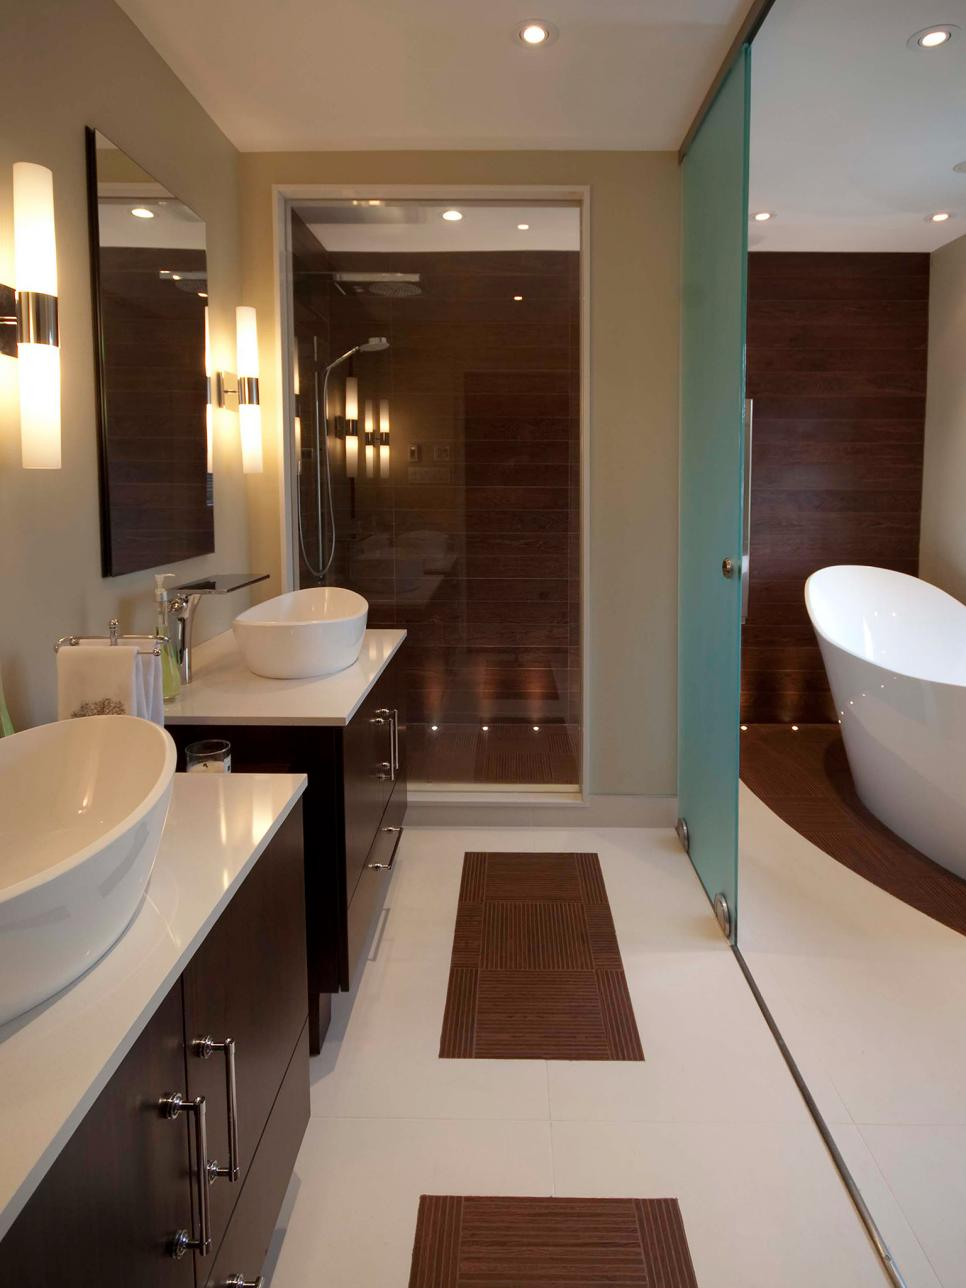 new-bathroom-design-ideas-on-bathroom-with-pictures-99-stylish-design-ideas-you39ll-love-19